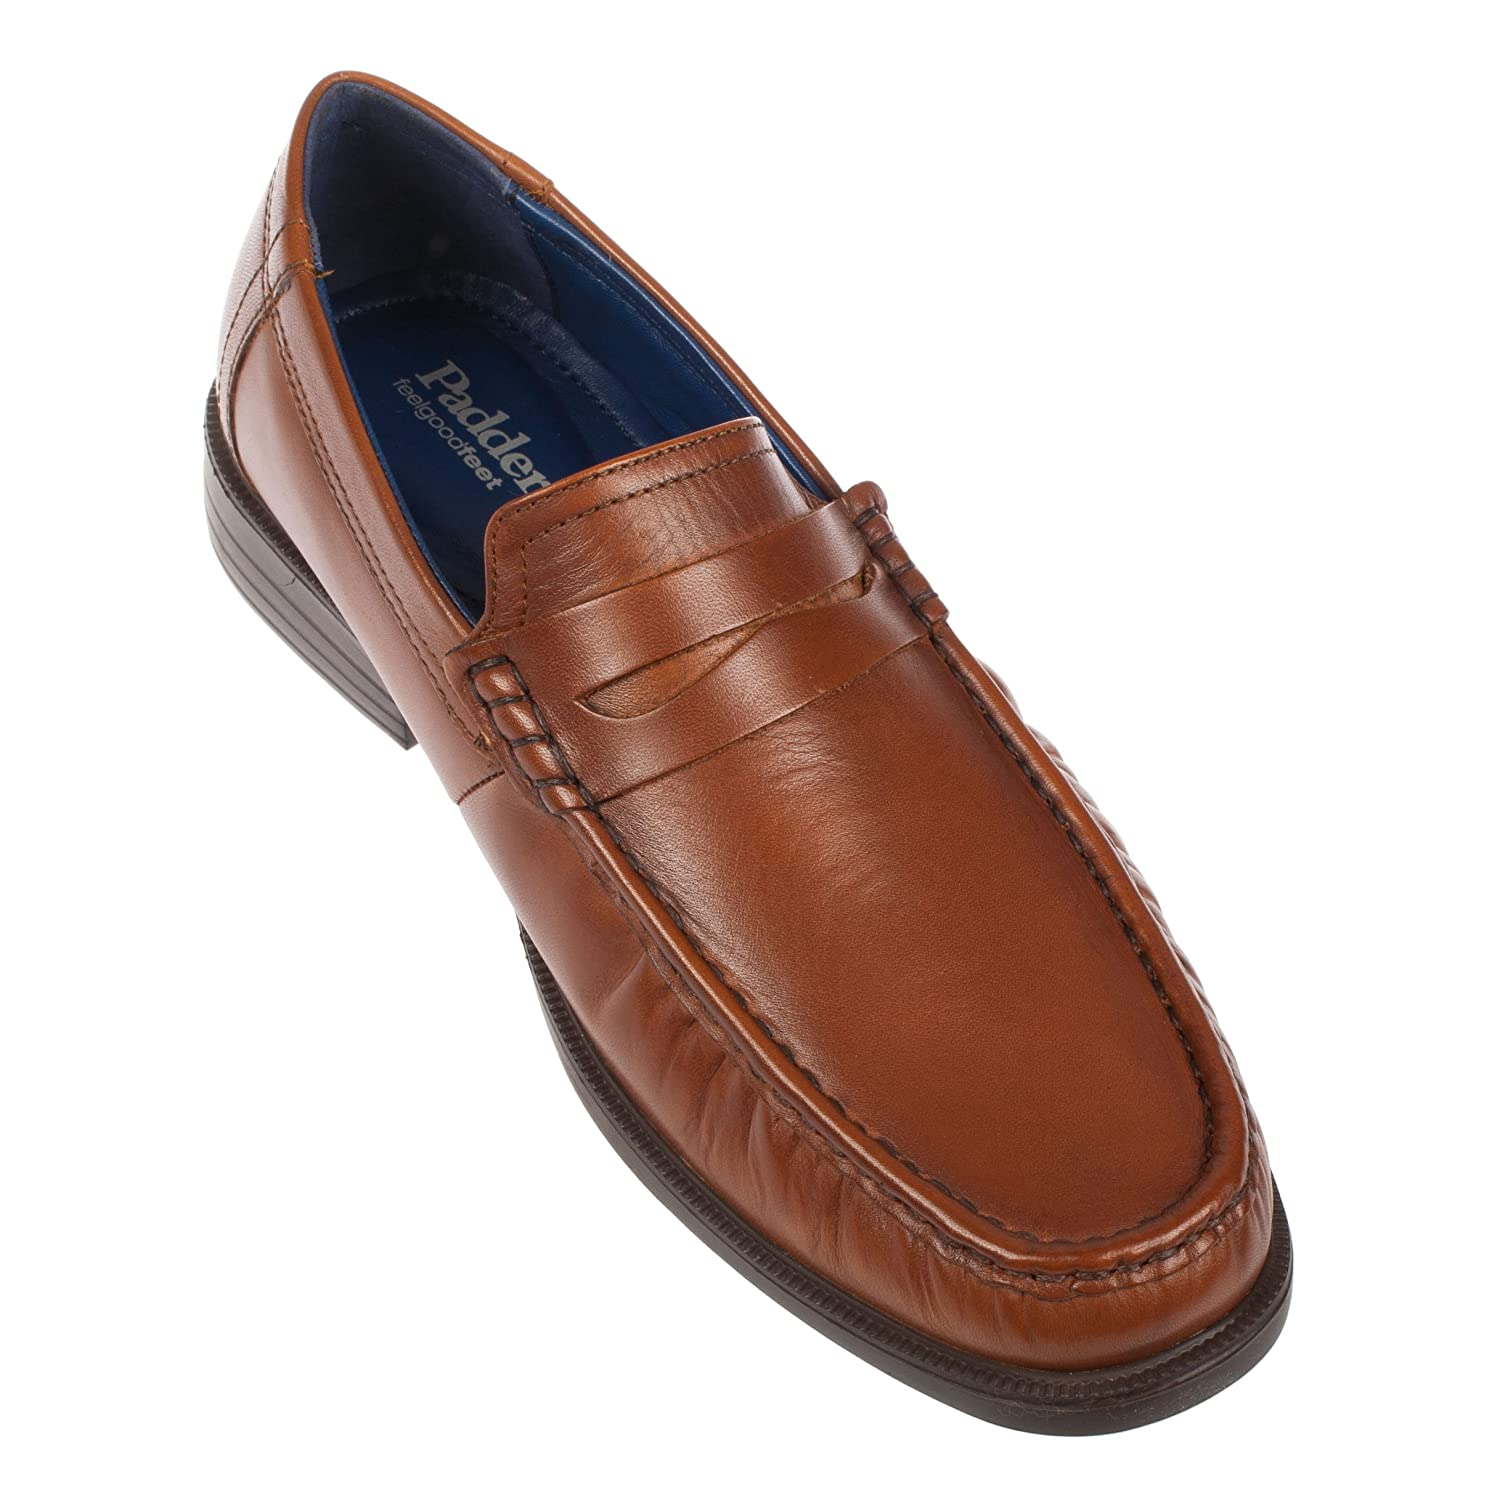 ec55a86b54f23 Padders Baron Mens Leather Wide (G Fit) Loafer Shoes Tan: Amazon.co.uk:  Shoes & Bags